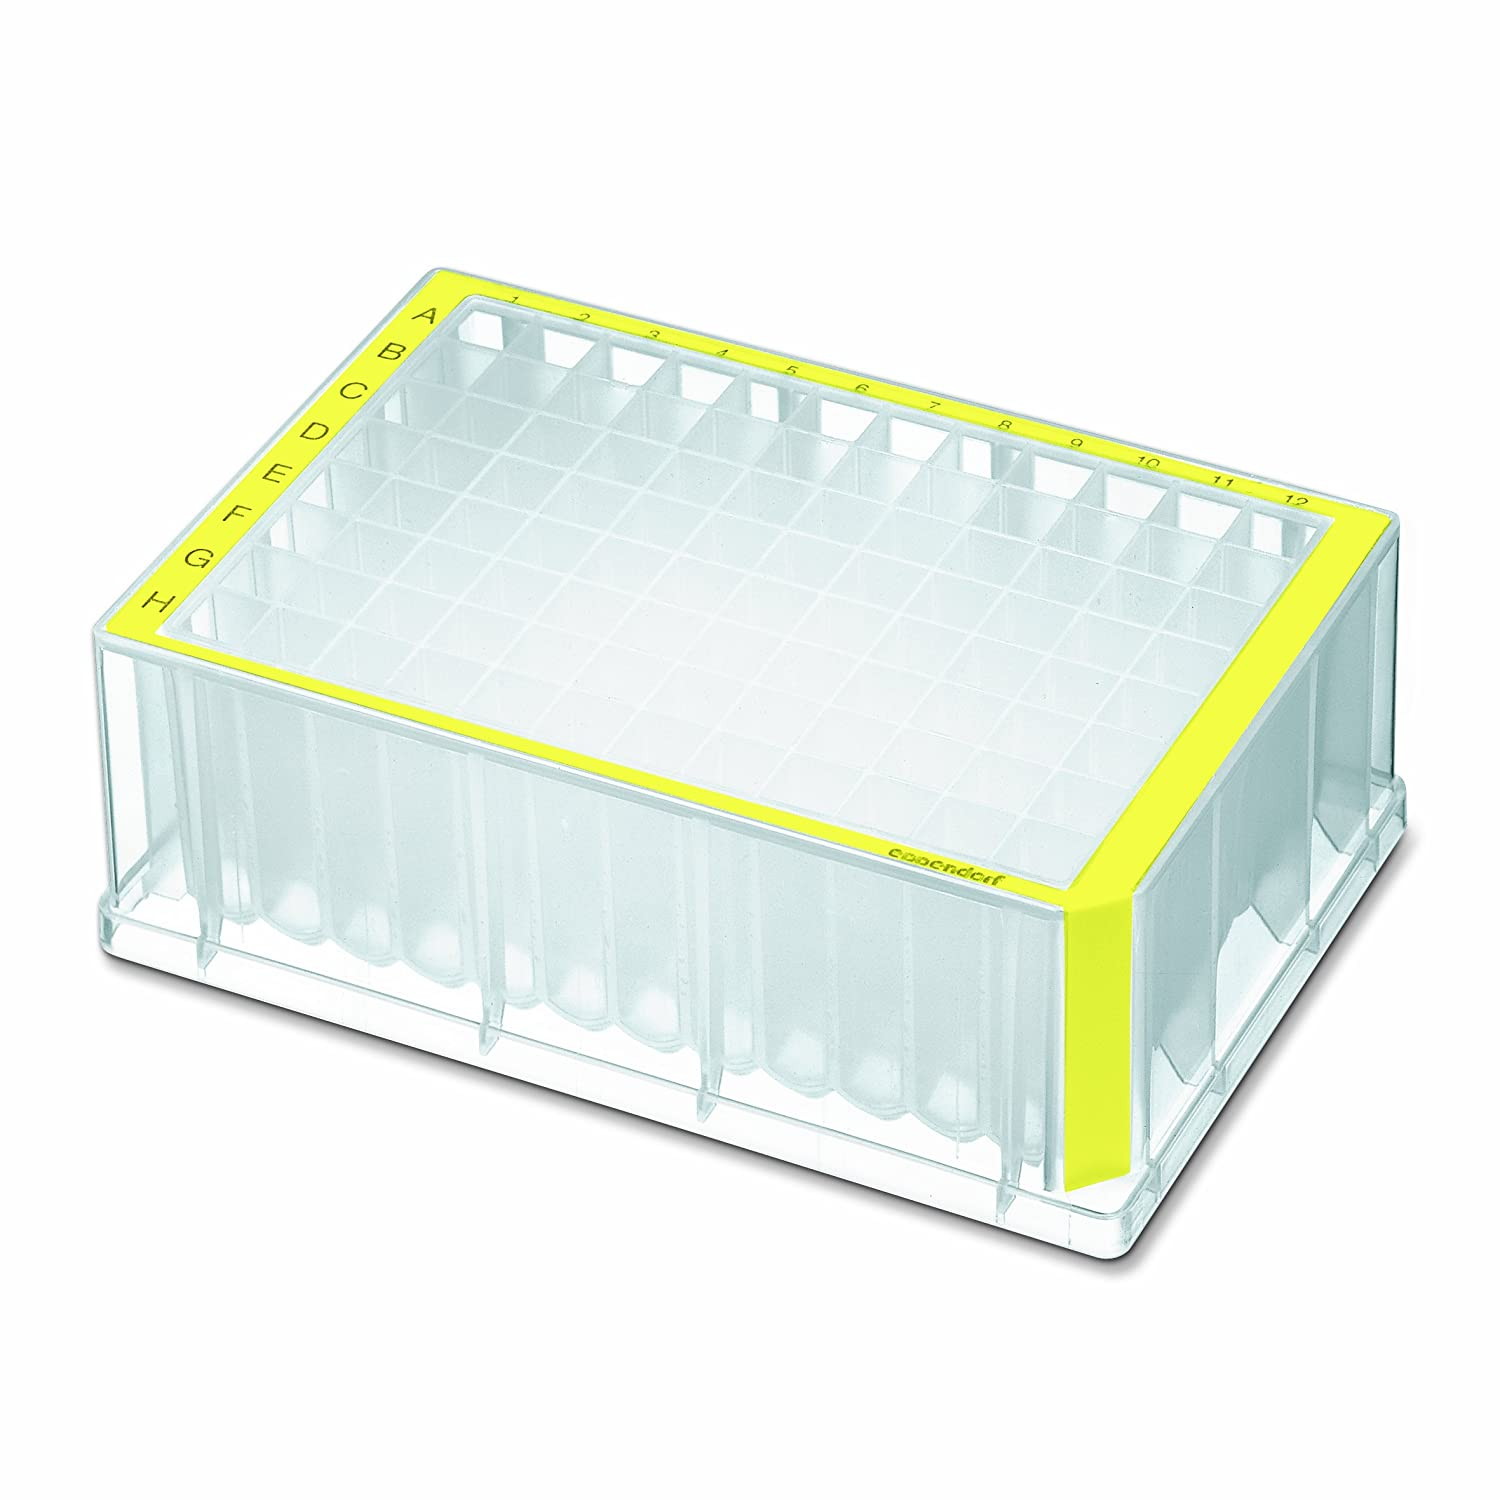 Eppendorf 951033626 Standard Deepwell Plate with 96 Wells, 2000 microliter Volume, Yellow Border (Pack of 80)